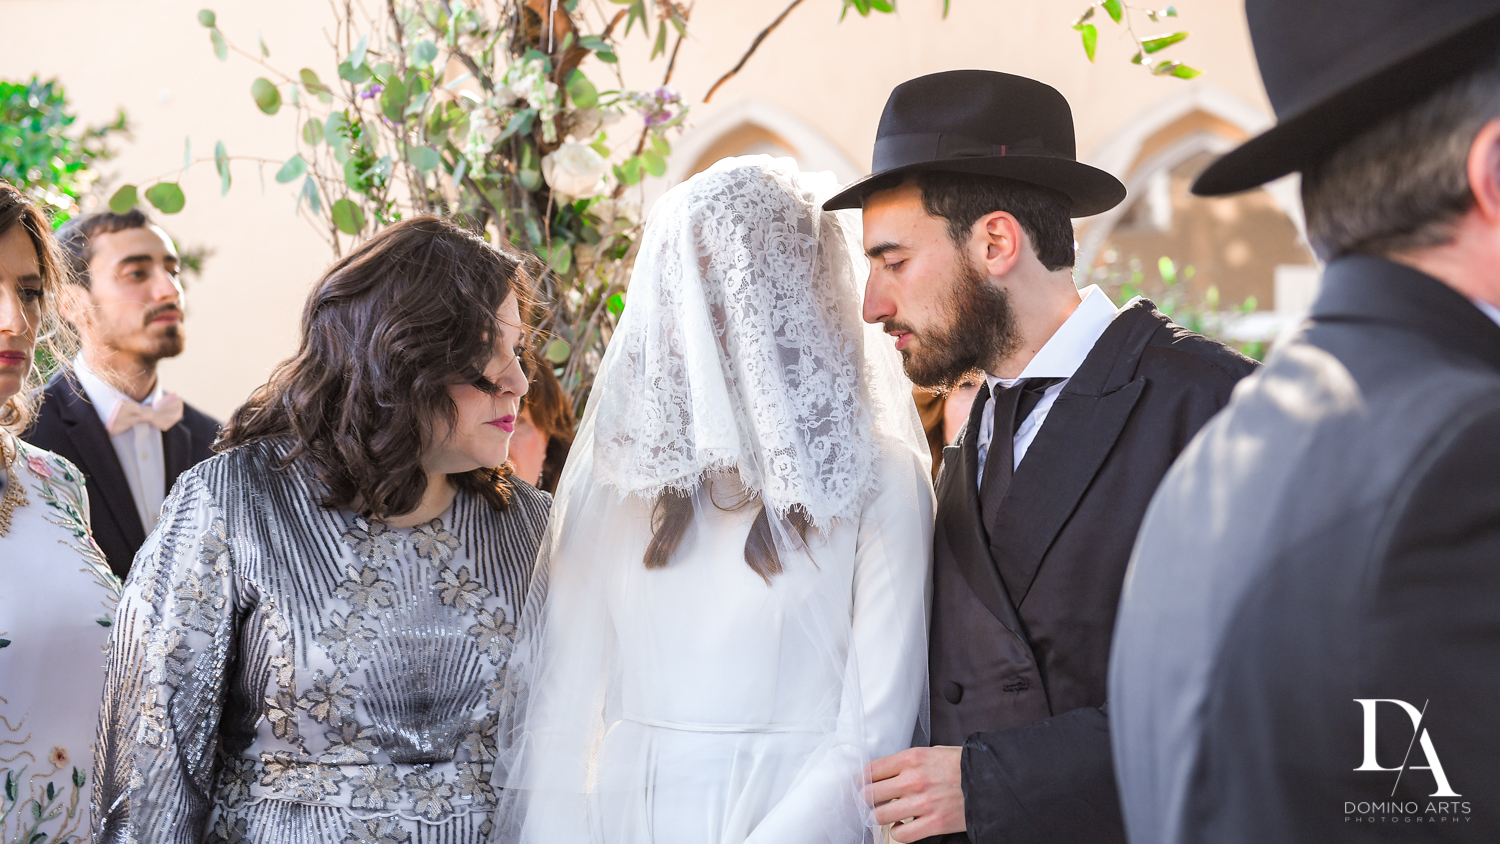 traditional brides veil at Hasidic Jewish Wedding at The Addison in Boca Raton by Domino Arts Photography